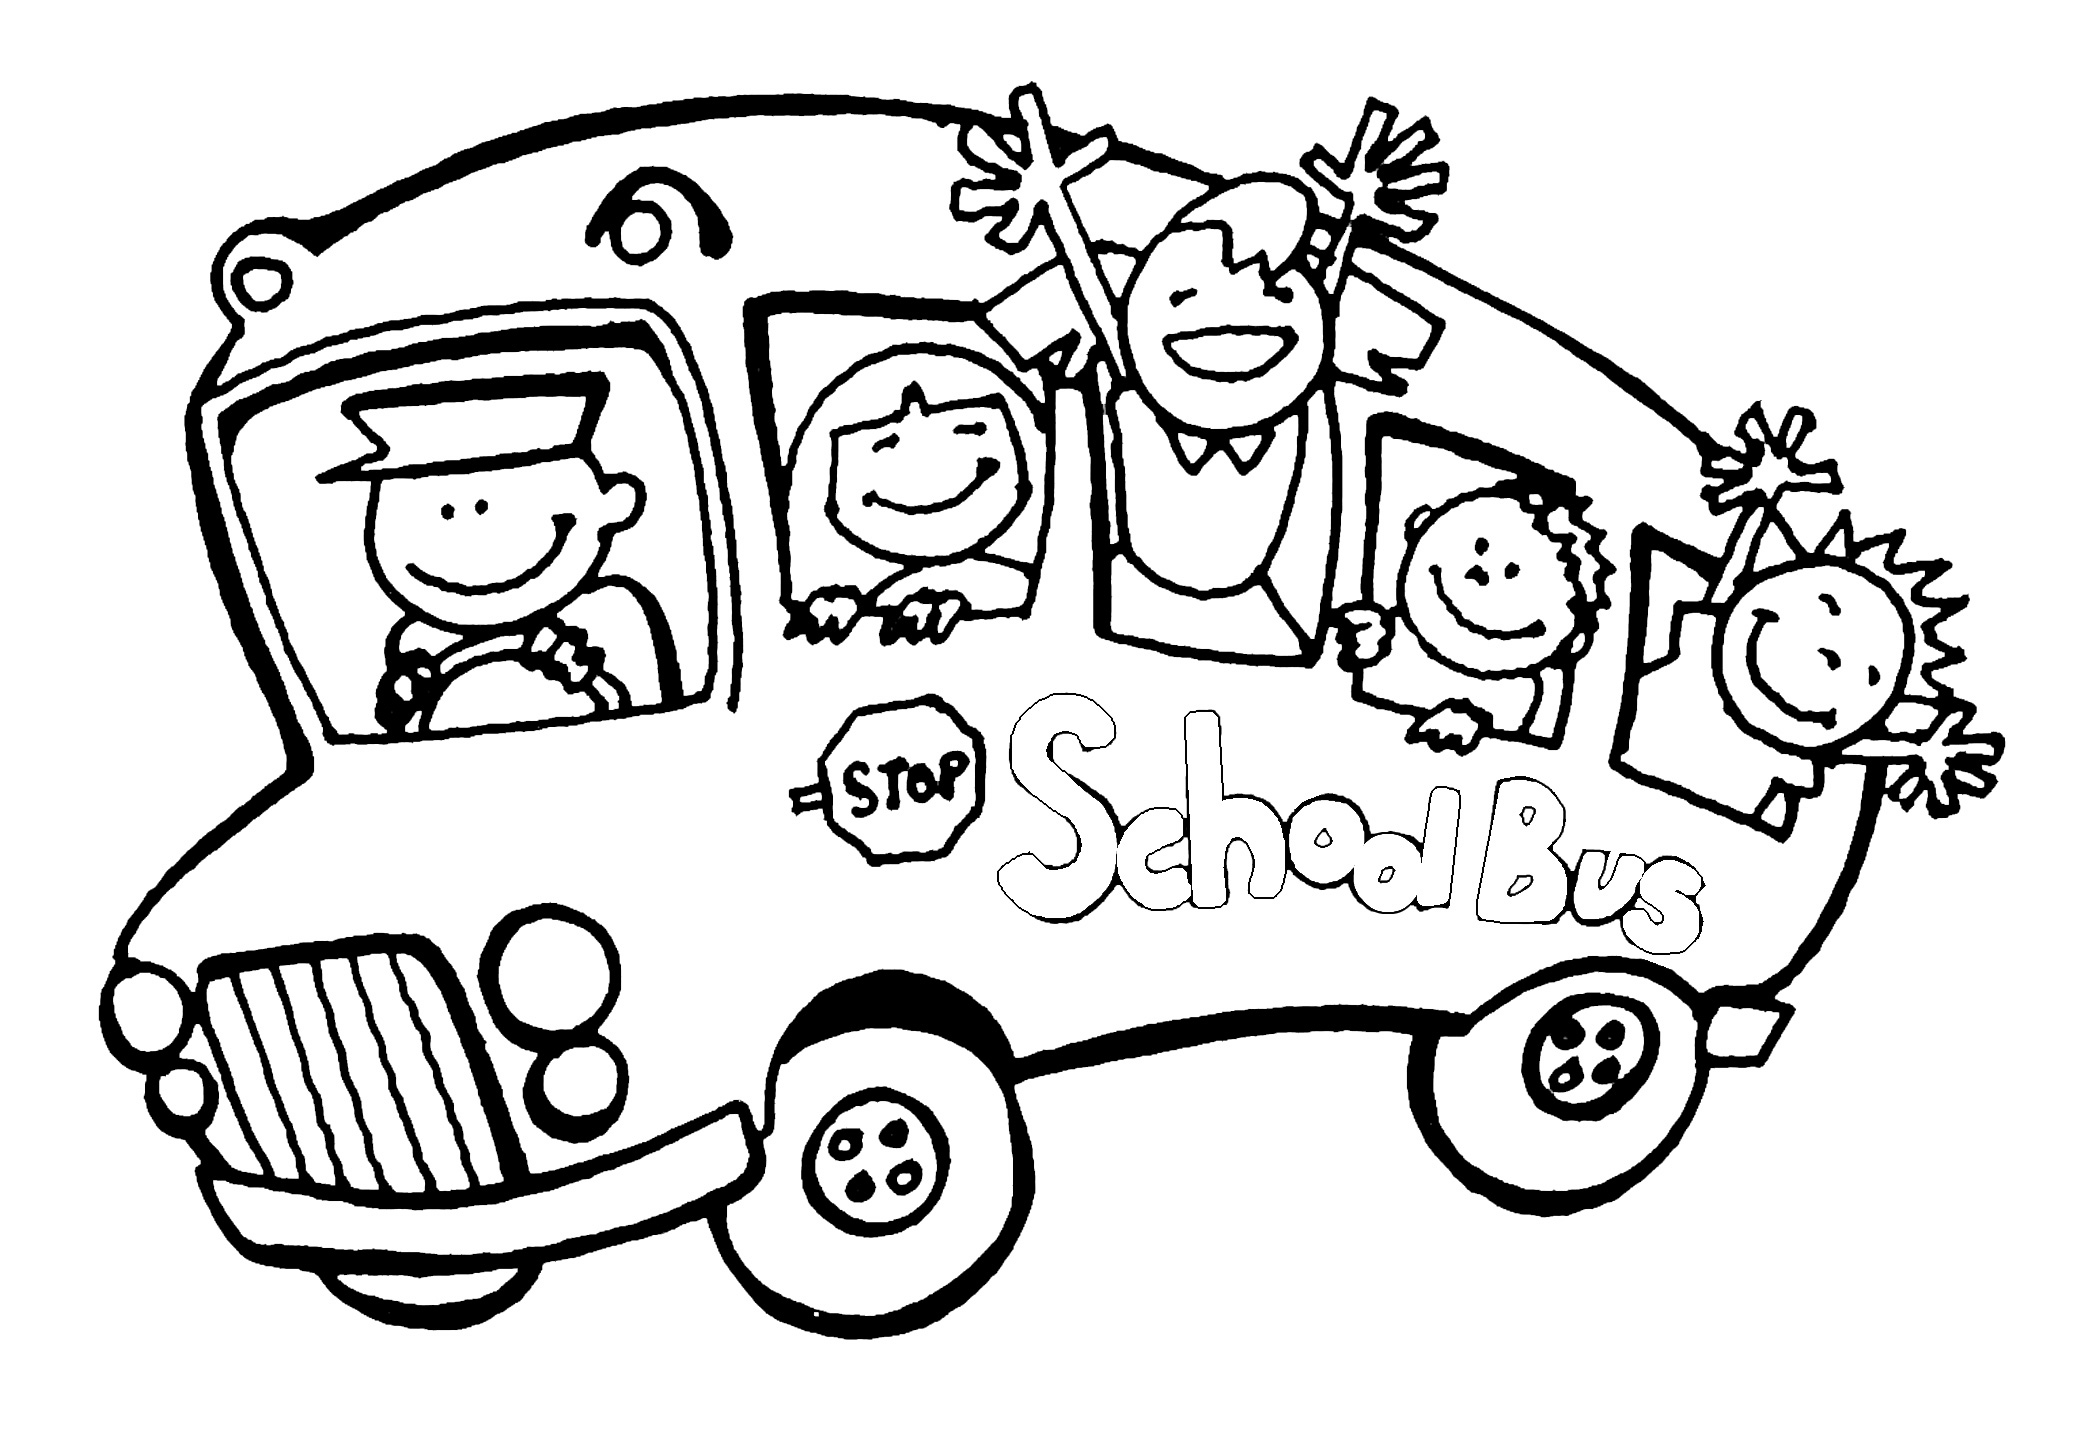 Kindergarten Coloring Sheets 03 Sheri Sarton Gallery Of Christmas Coloring Pages Free to Print